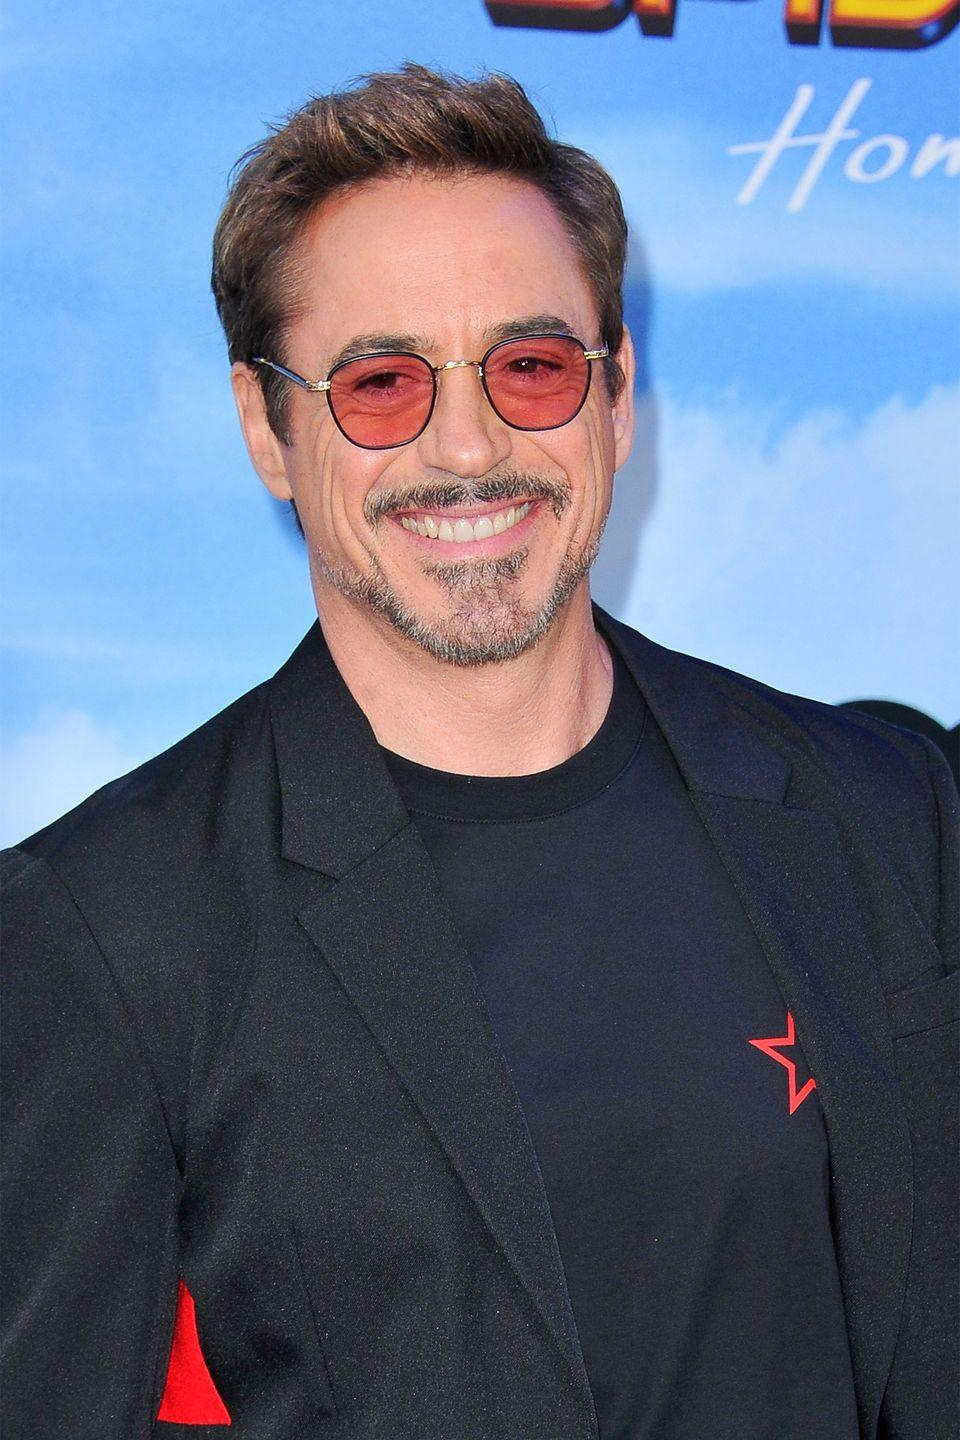 """<p>The <em>Iron Man </em>star <a href=""""https://www.rollingstone.com/culture/pictures/dropout-boogie-14-celebs-who-never-got-their-degree-20140528/robert-downey-jr-0636349"""" rel=""""nofollow noopener"""" target=""""_blank"""" data-ylk=""""slk:dropped out"""" class=""""link rapid-noclick-resp"""">dropped out</a> of Santa Monica High School after his junior year when his father gave him an ultimatum to """"either show up [to school] every day or quit and get a job."""" The move definitely worked out for the A-List actor. </p>"""